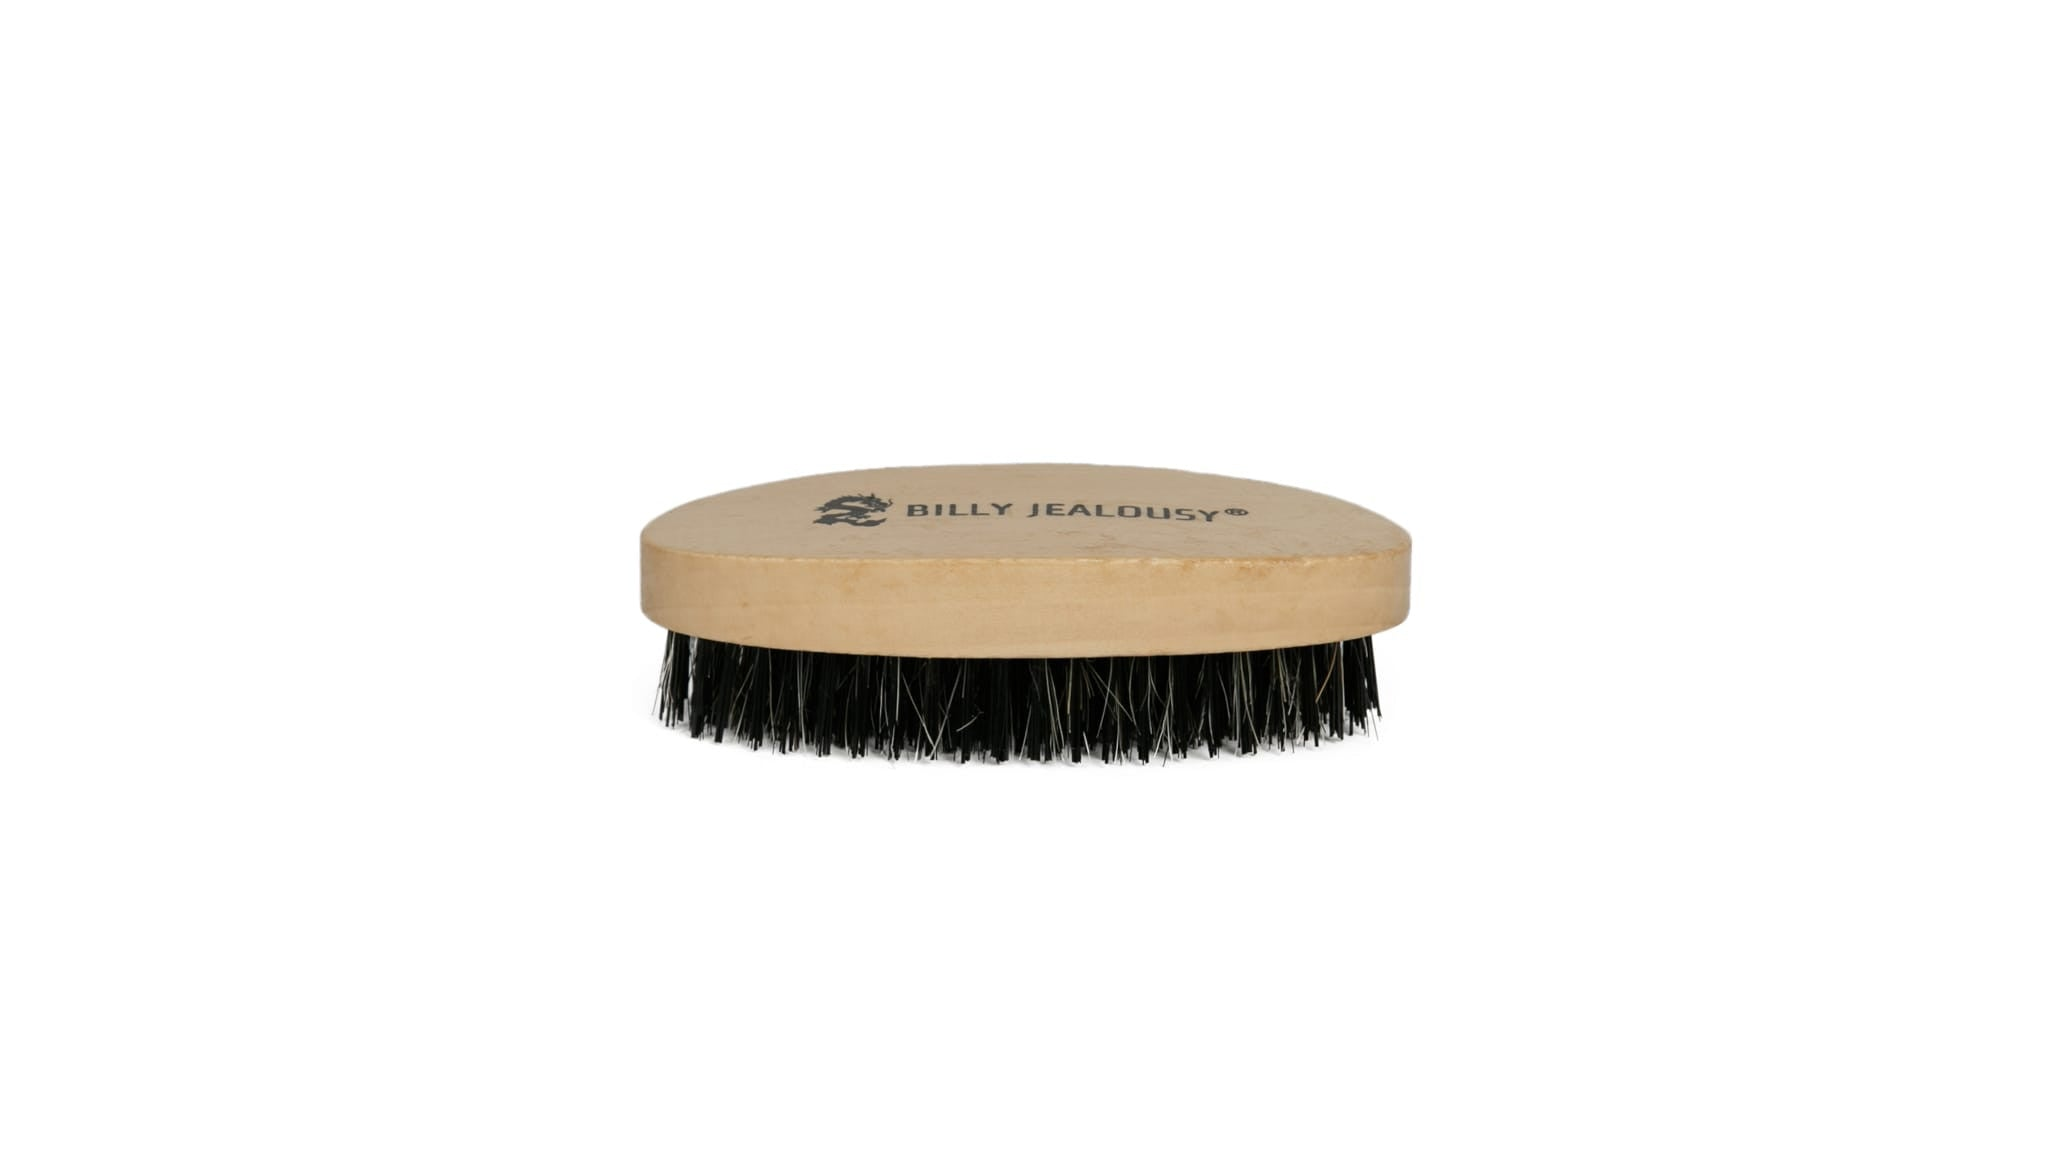 billy jealousy beard envy care kit with brush the chivery. Black Bedroom Furniture Sets. Home Design Ideas